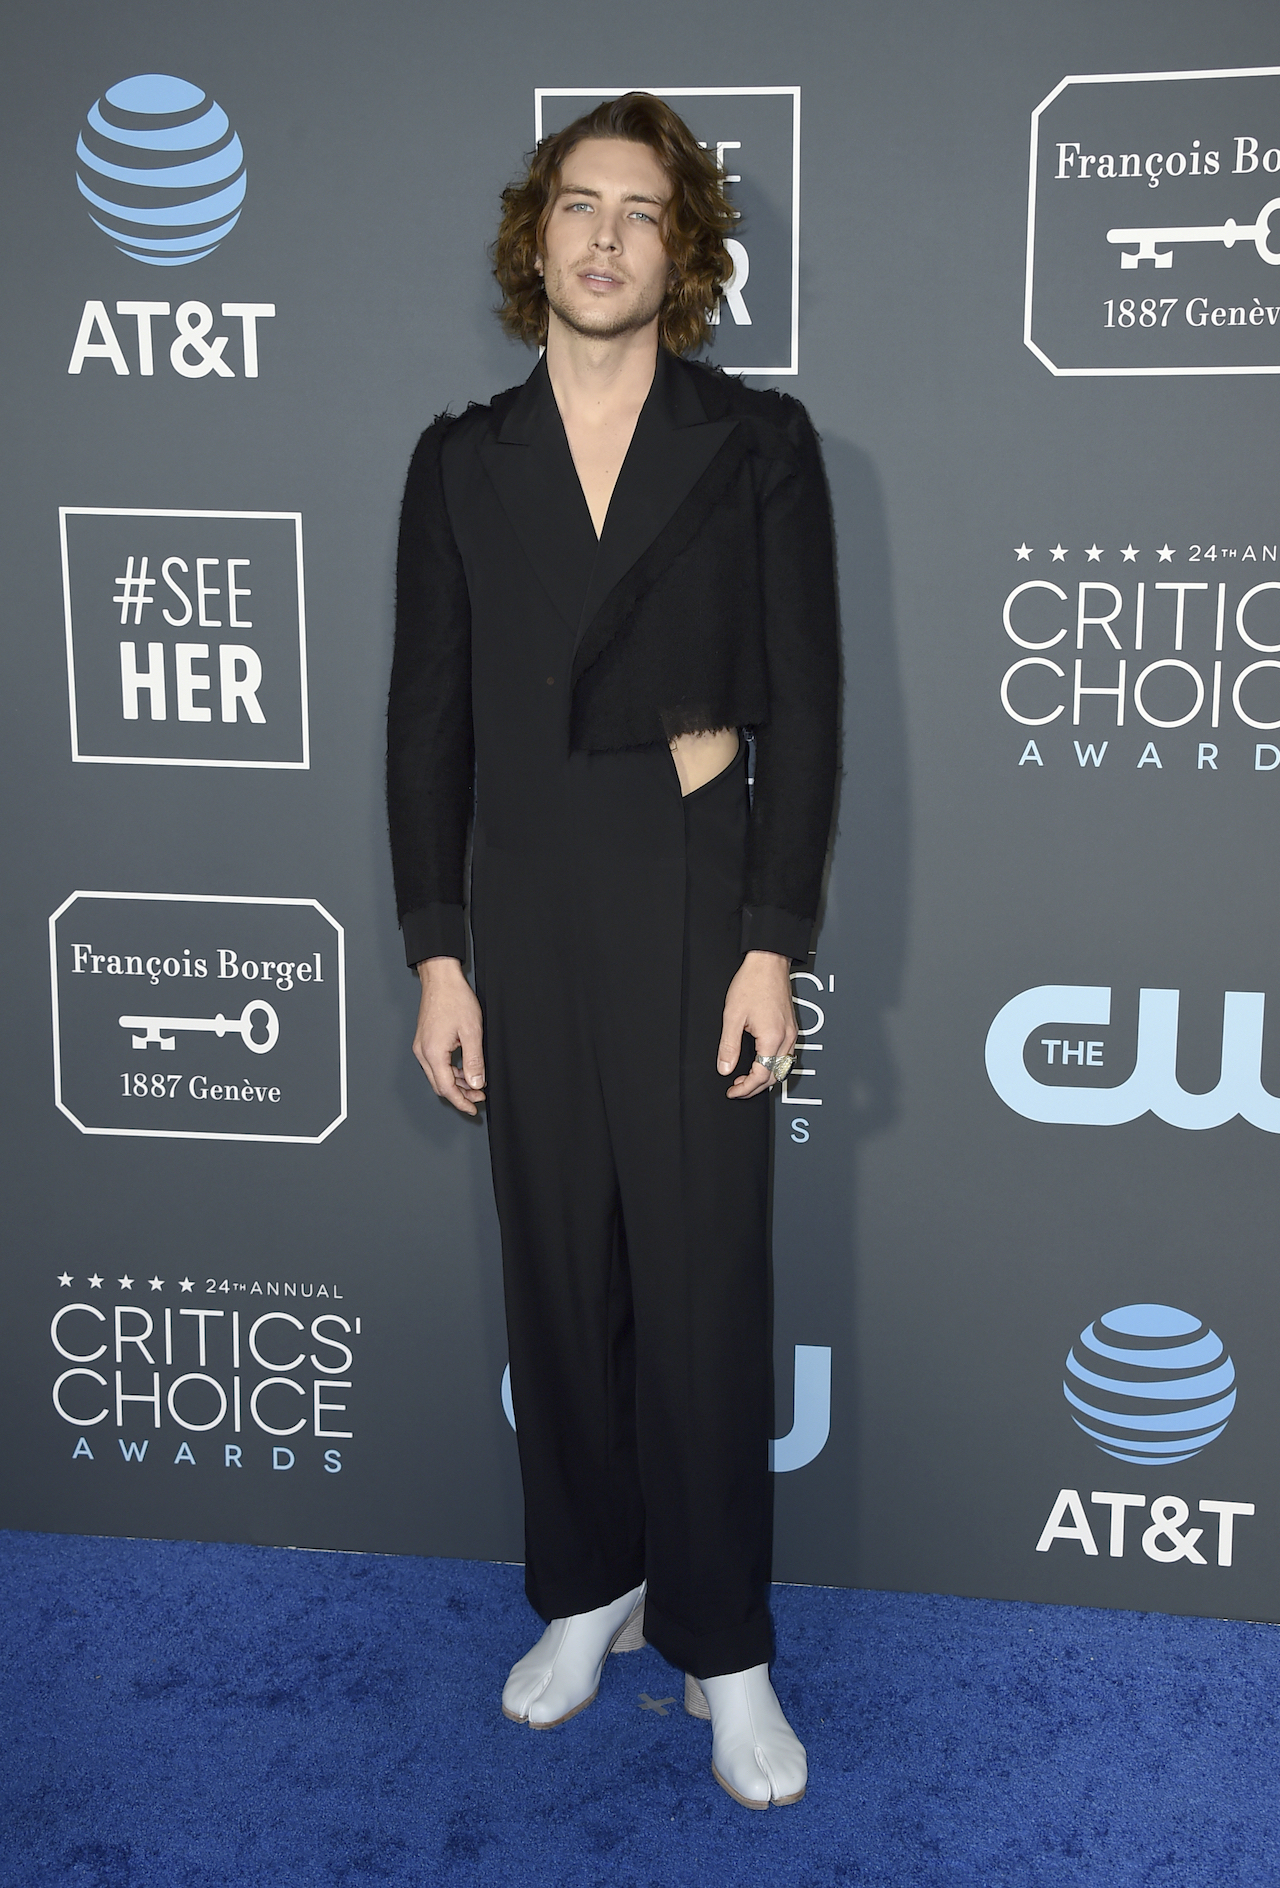 "<div class=""meta image-caption""><div class=""origin-logo origin-image ap""><span>AP</span></div><span class=""caption-text"">Cody Fern arrives at the 24th annual Critics' Choice Awards on Sunday, Jan. 13, 2019, at the Barker Hangar in Santa Monica, Calif. (Jordan Strauss/Invision/AP)</span></div>"